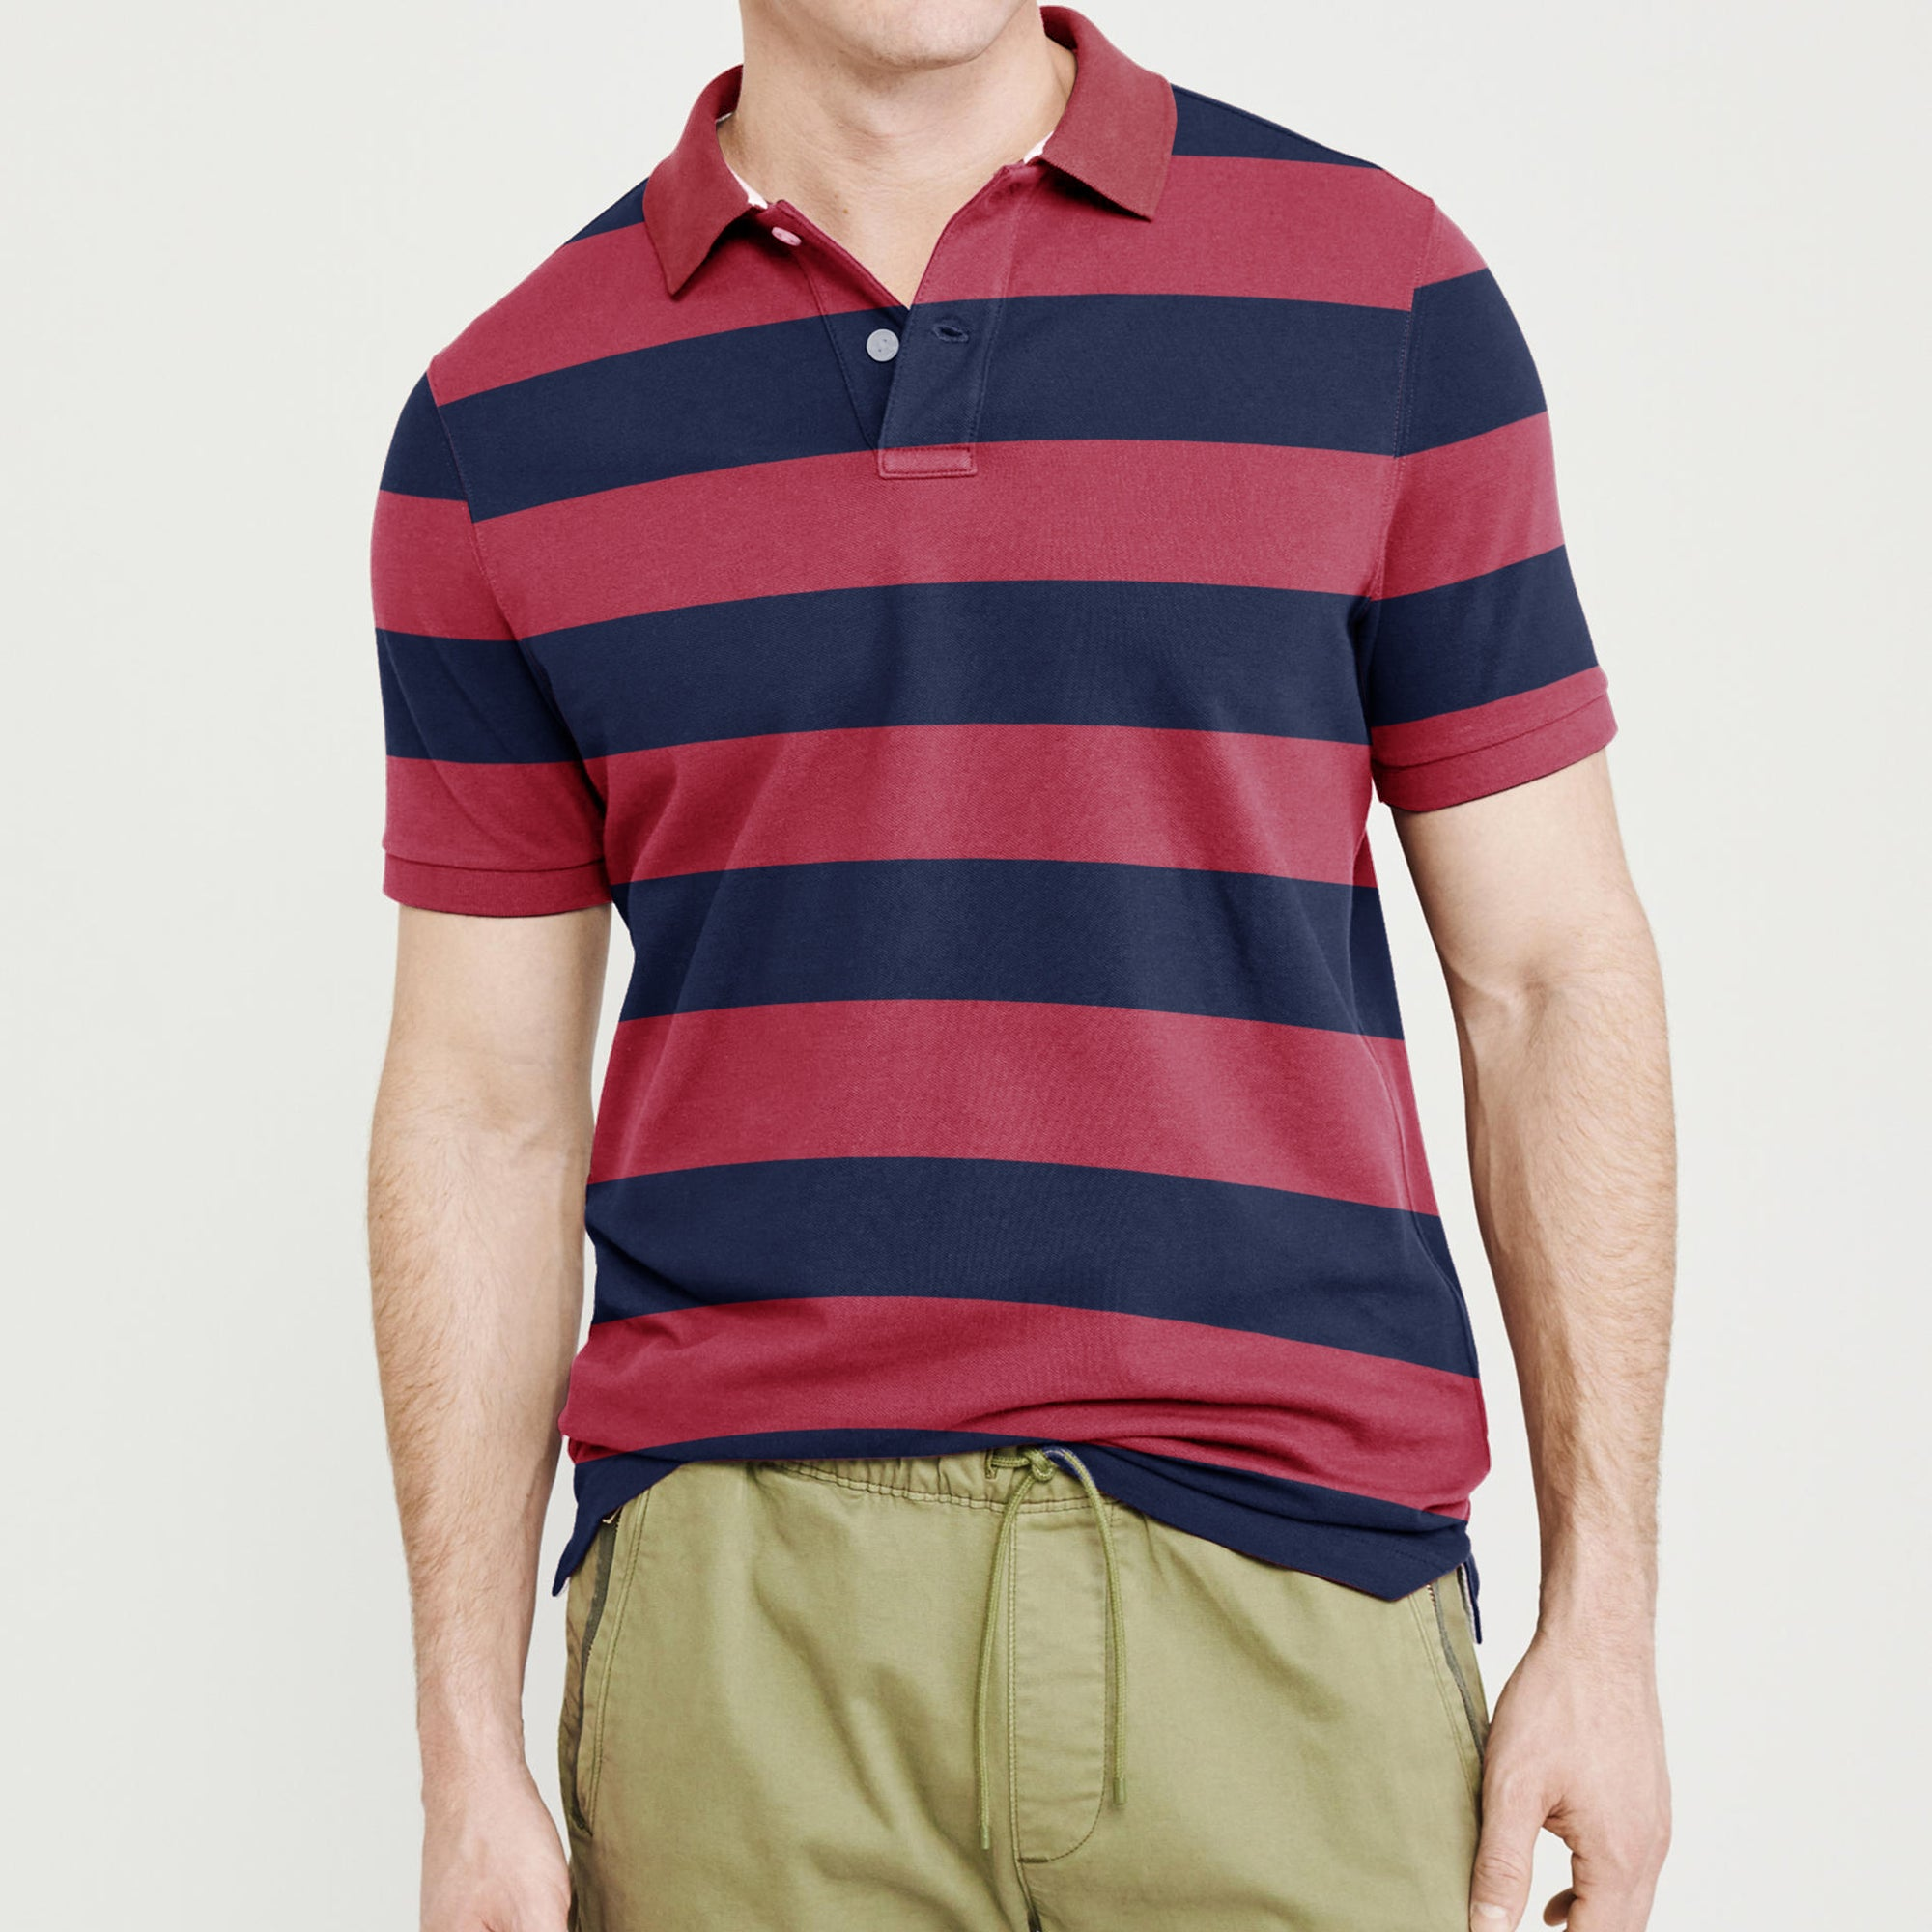 Banana Republic Short Sleeve Single Jersey Polo Shirt For Men-Pink & Navy Stripe-BE8409